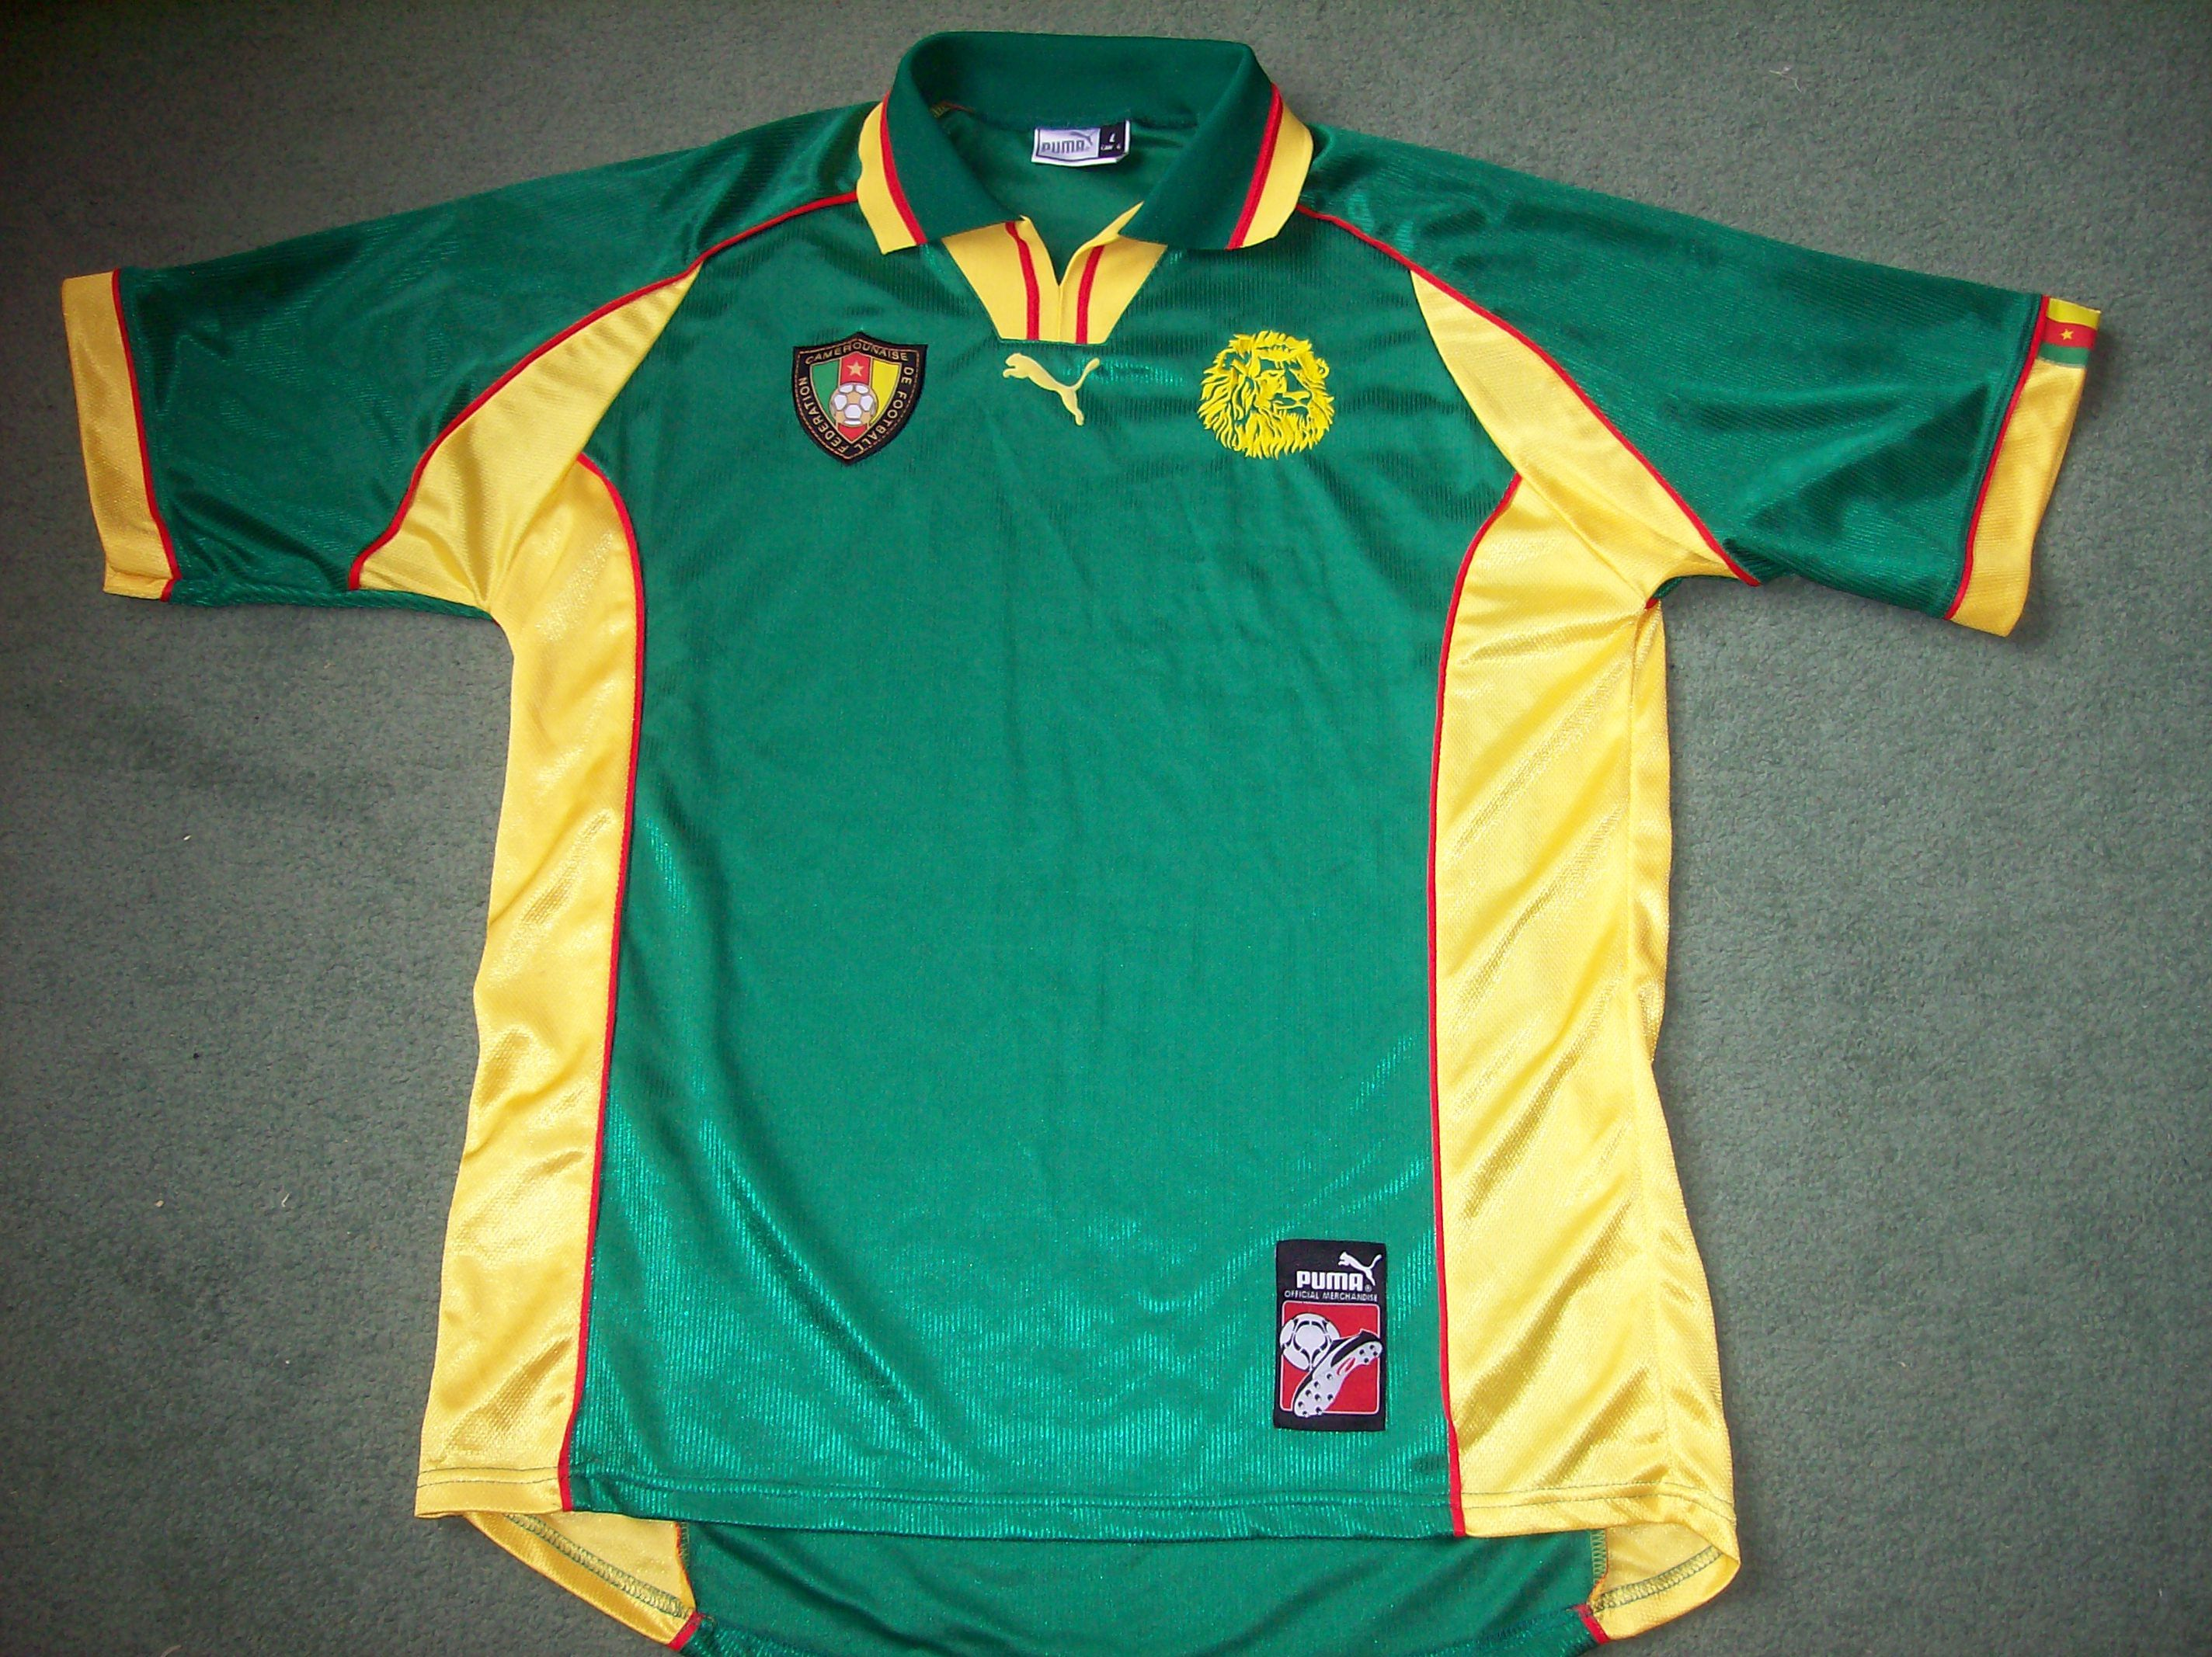 c37076728817 Cameroon Football Shirt from 1998/99 Classic old football shirts ...